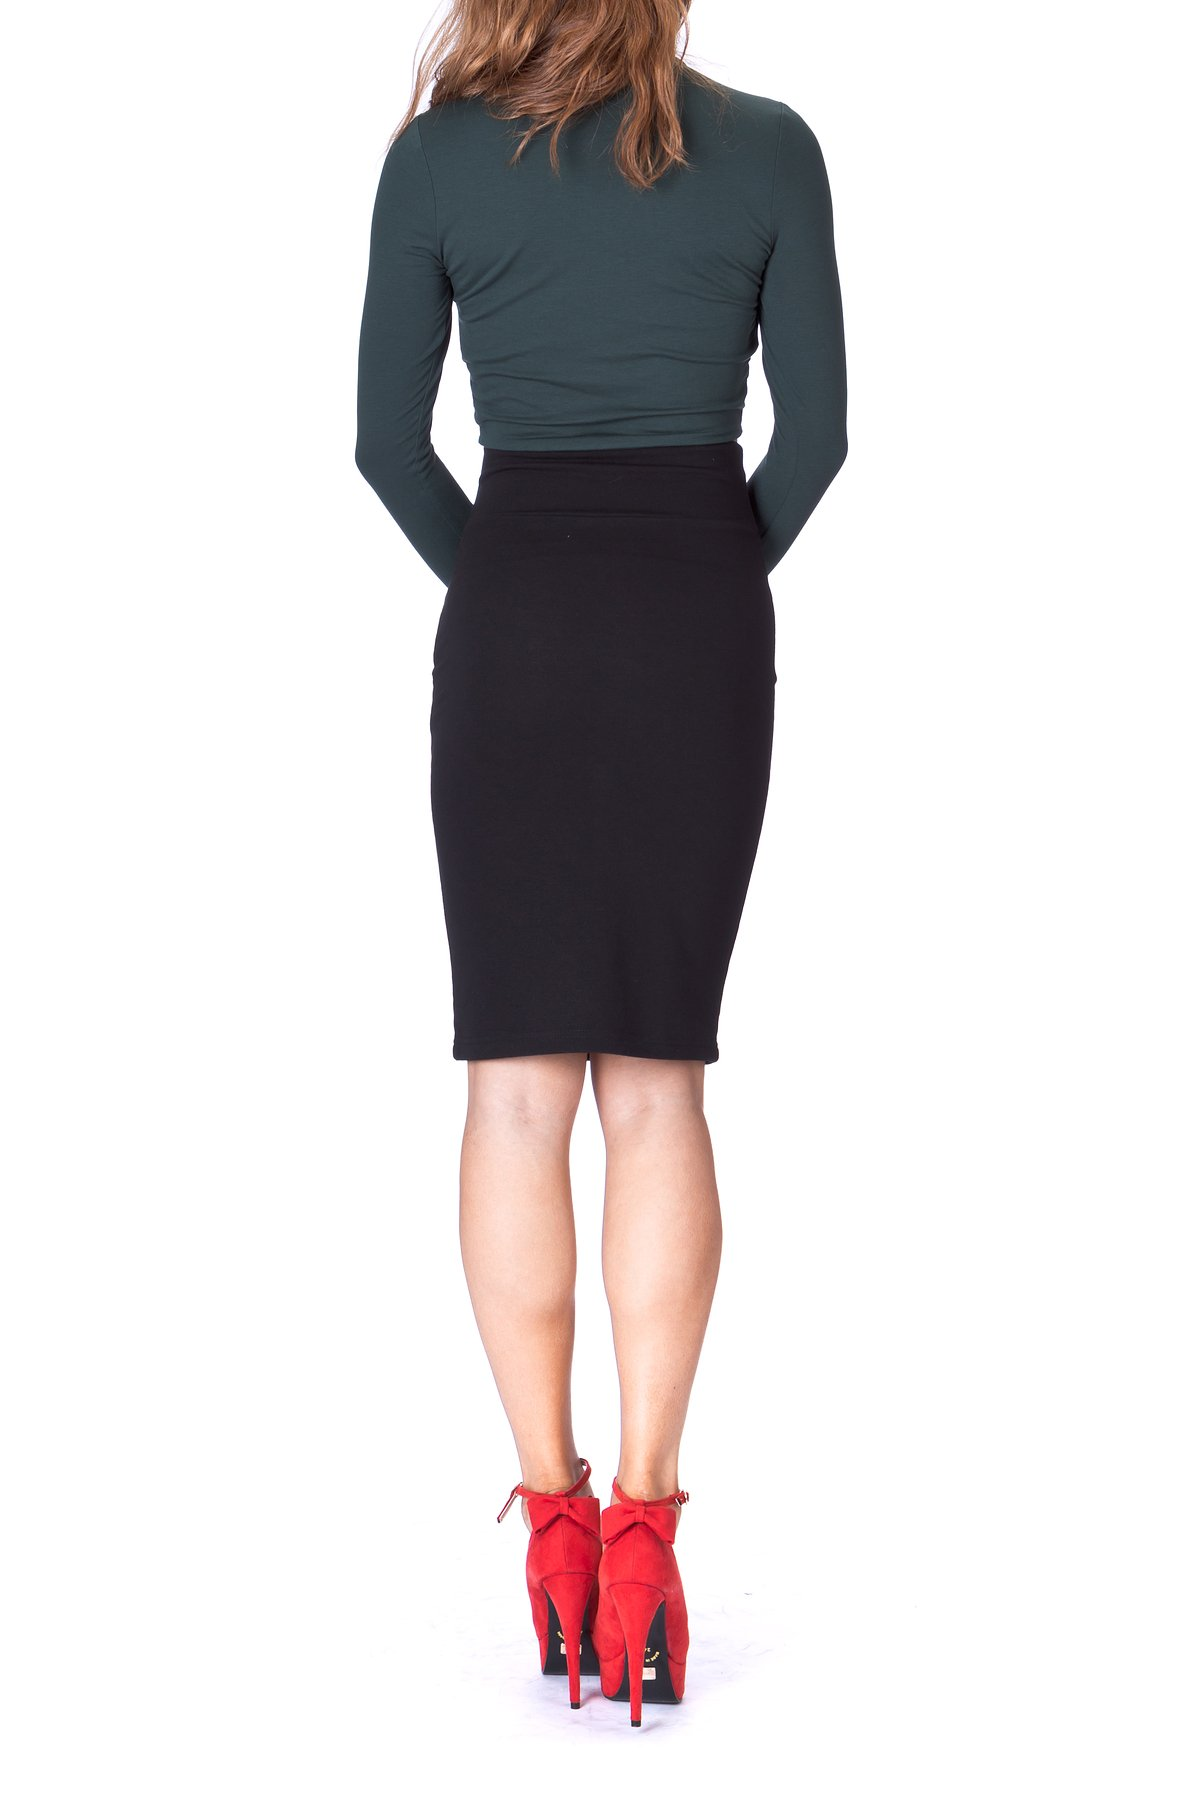 Every Occasion Stretch Pull on Wide High Waist Bodycon Pencil Knee Length Midi Skirt Black 4